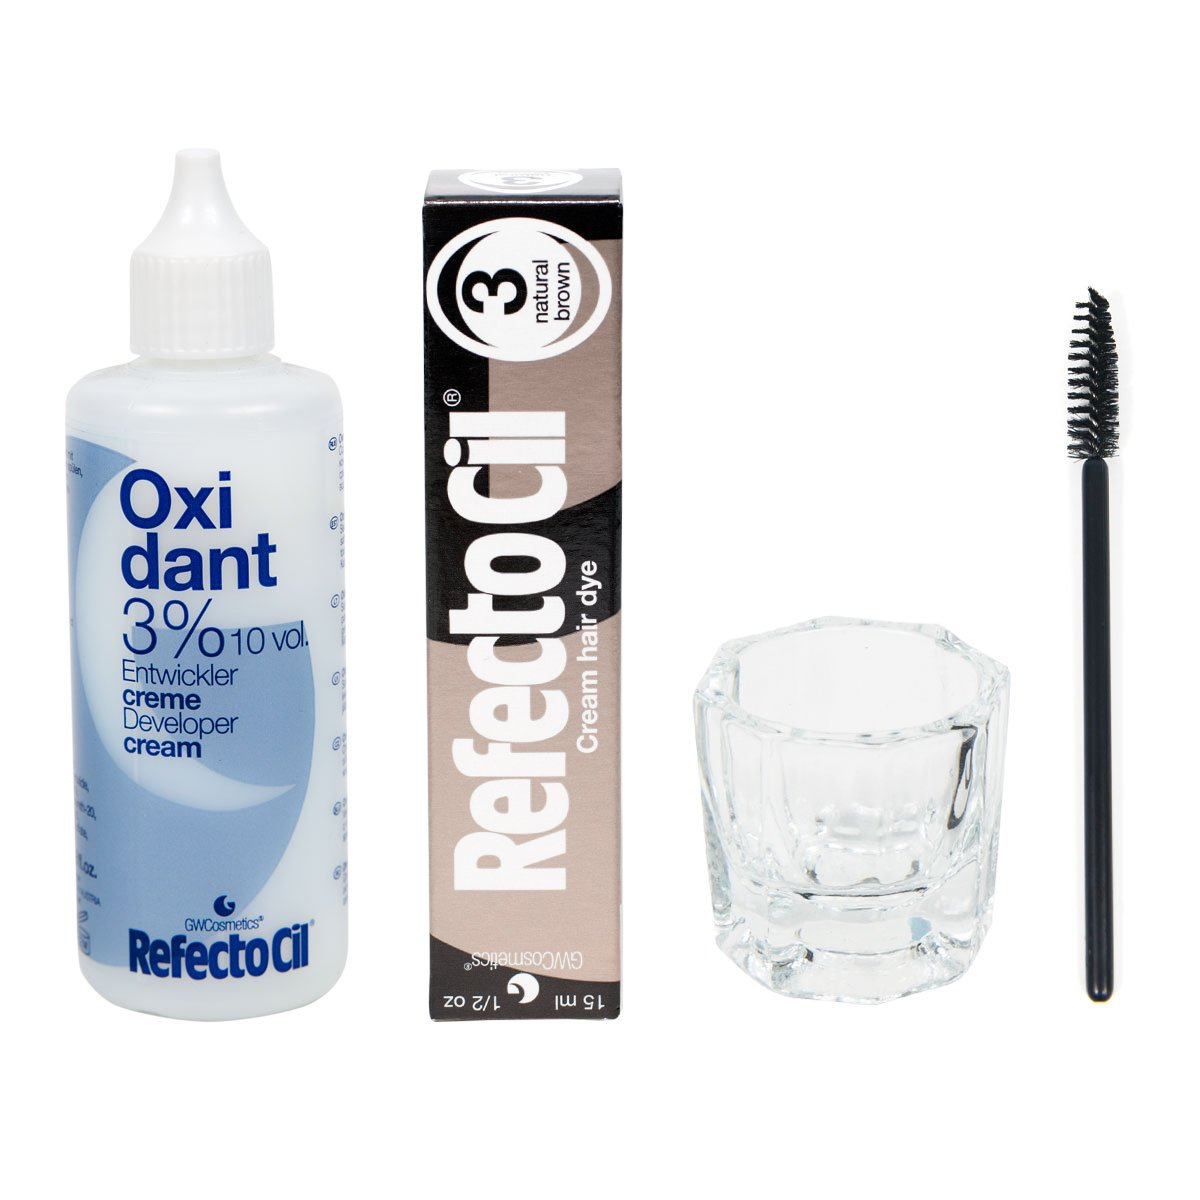 Refectocil KIT - Natural Brown Cream Hair Dye + Creme Oxidant 3% 3.4oz + Mixing Dish + Mascara Brush